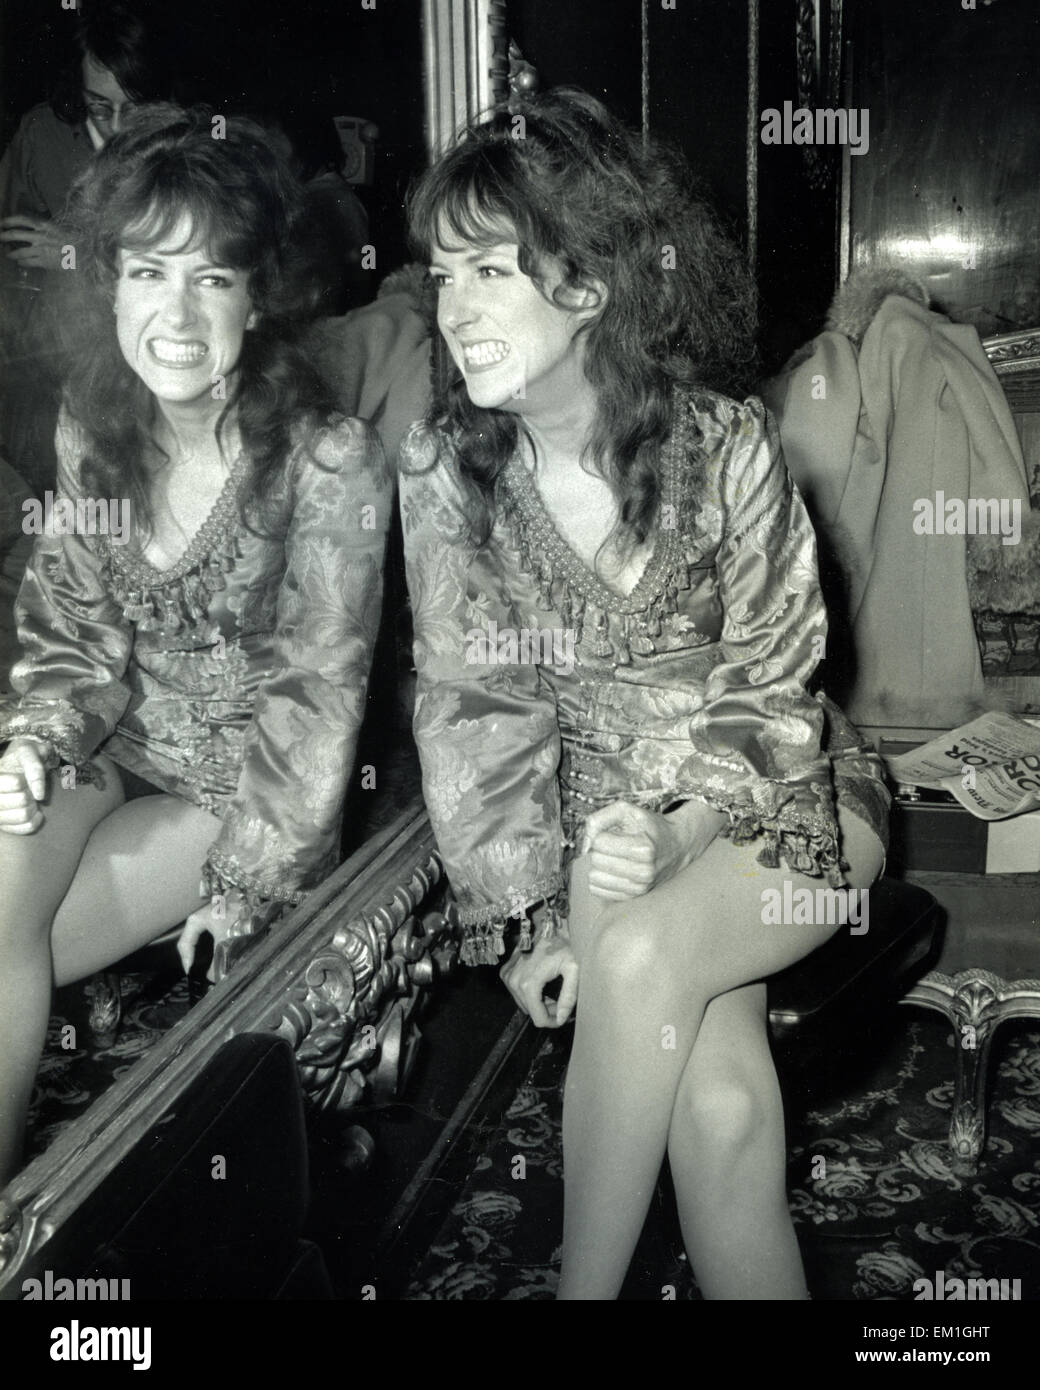 GRACE SLICK of Jefferson Airplane in August 1968. Photo Tony Gale - Stock Image